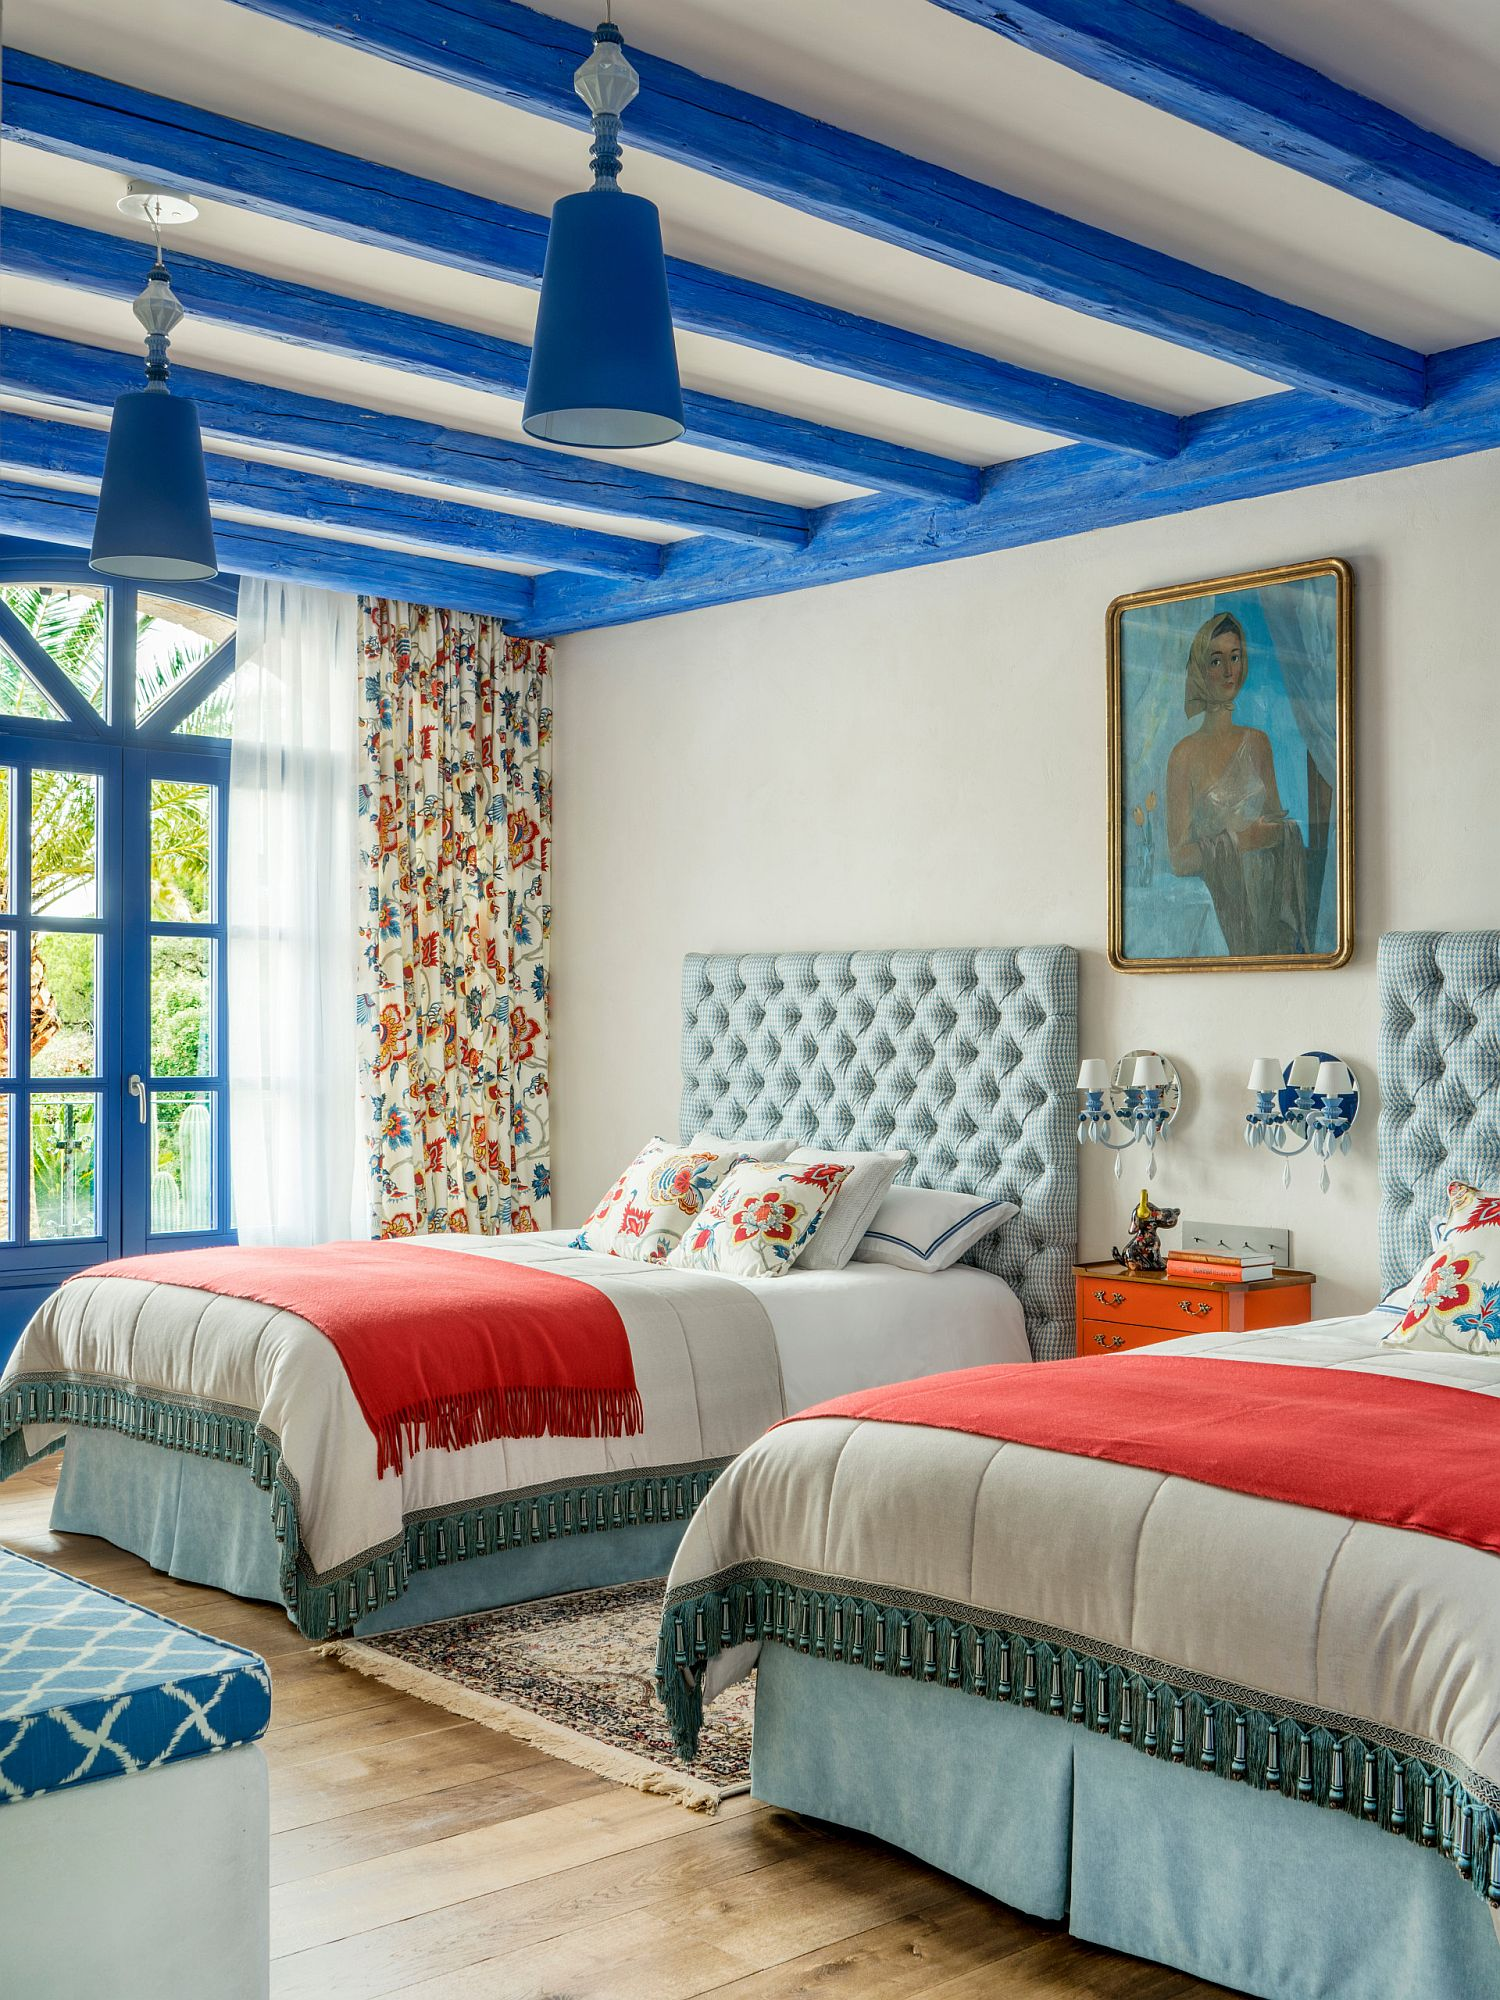 Gorgeous-ceiling-beams-in-blue-bring-color-to-the-spacious-modern-Mediterranean-kids-room